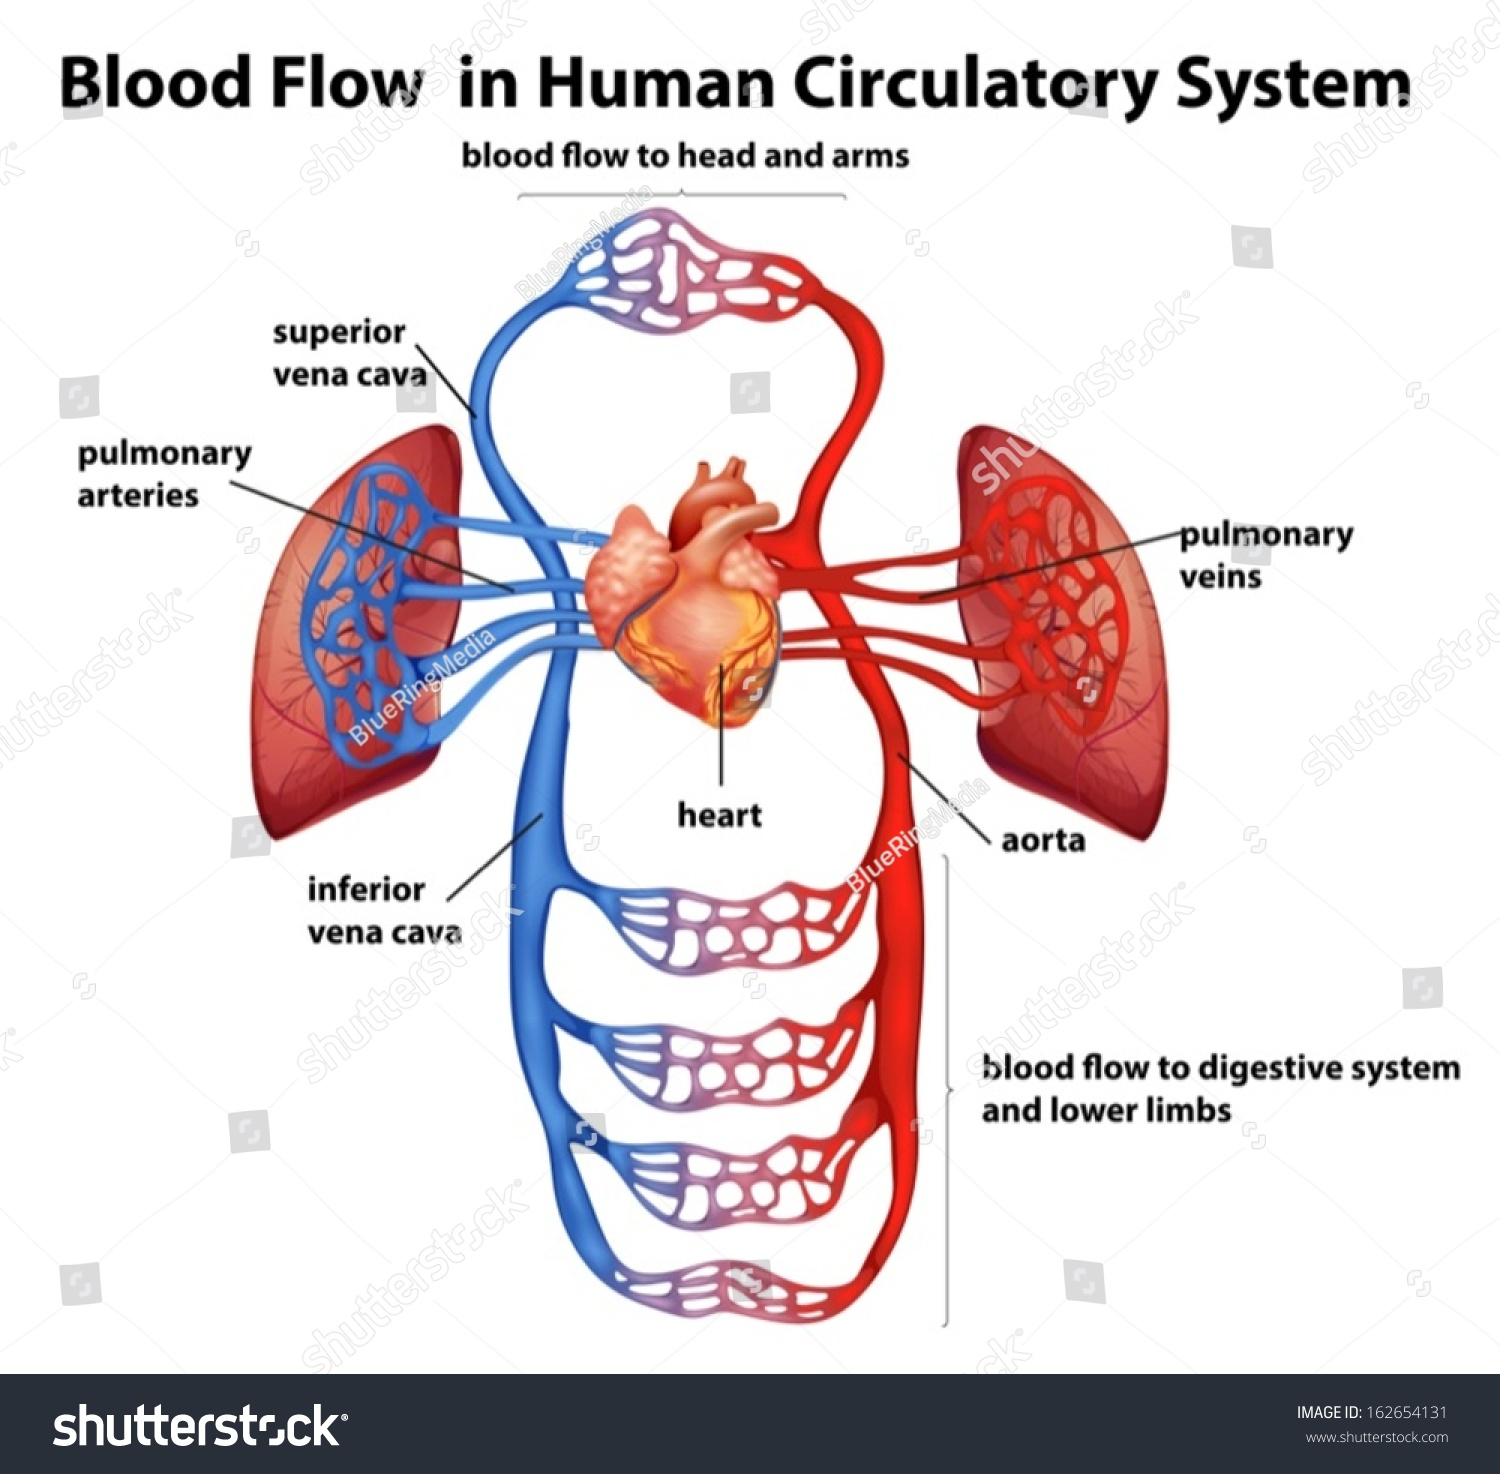 blood circulatory system essay - contracts.digitaltreasure.co.bw